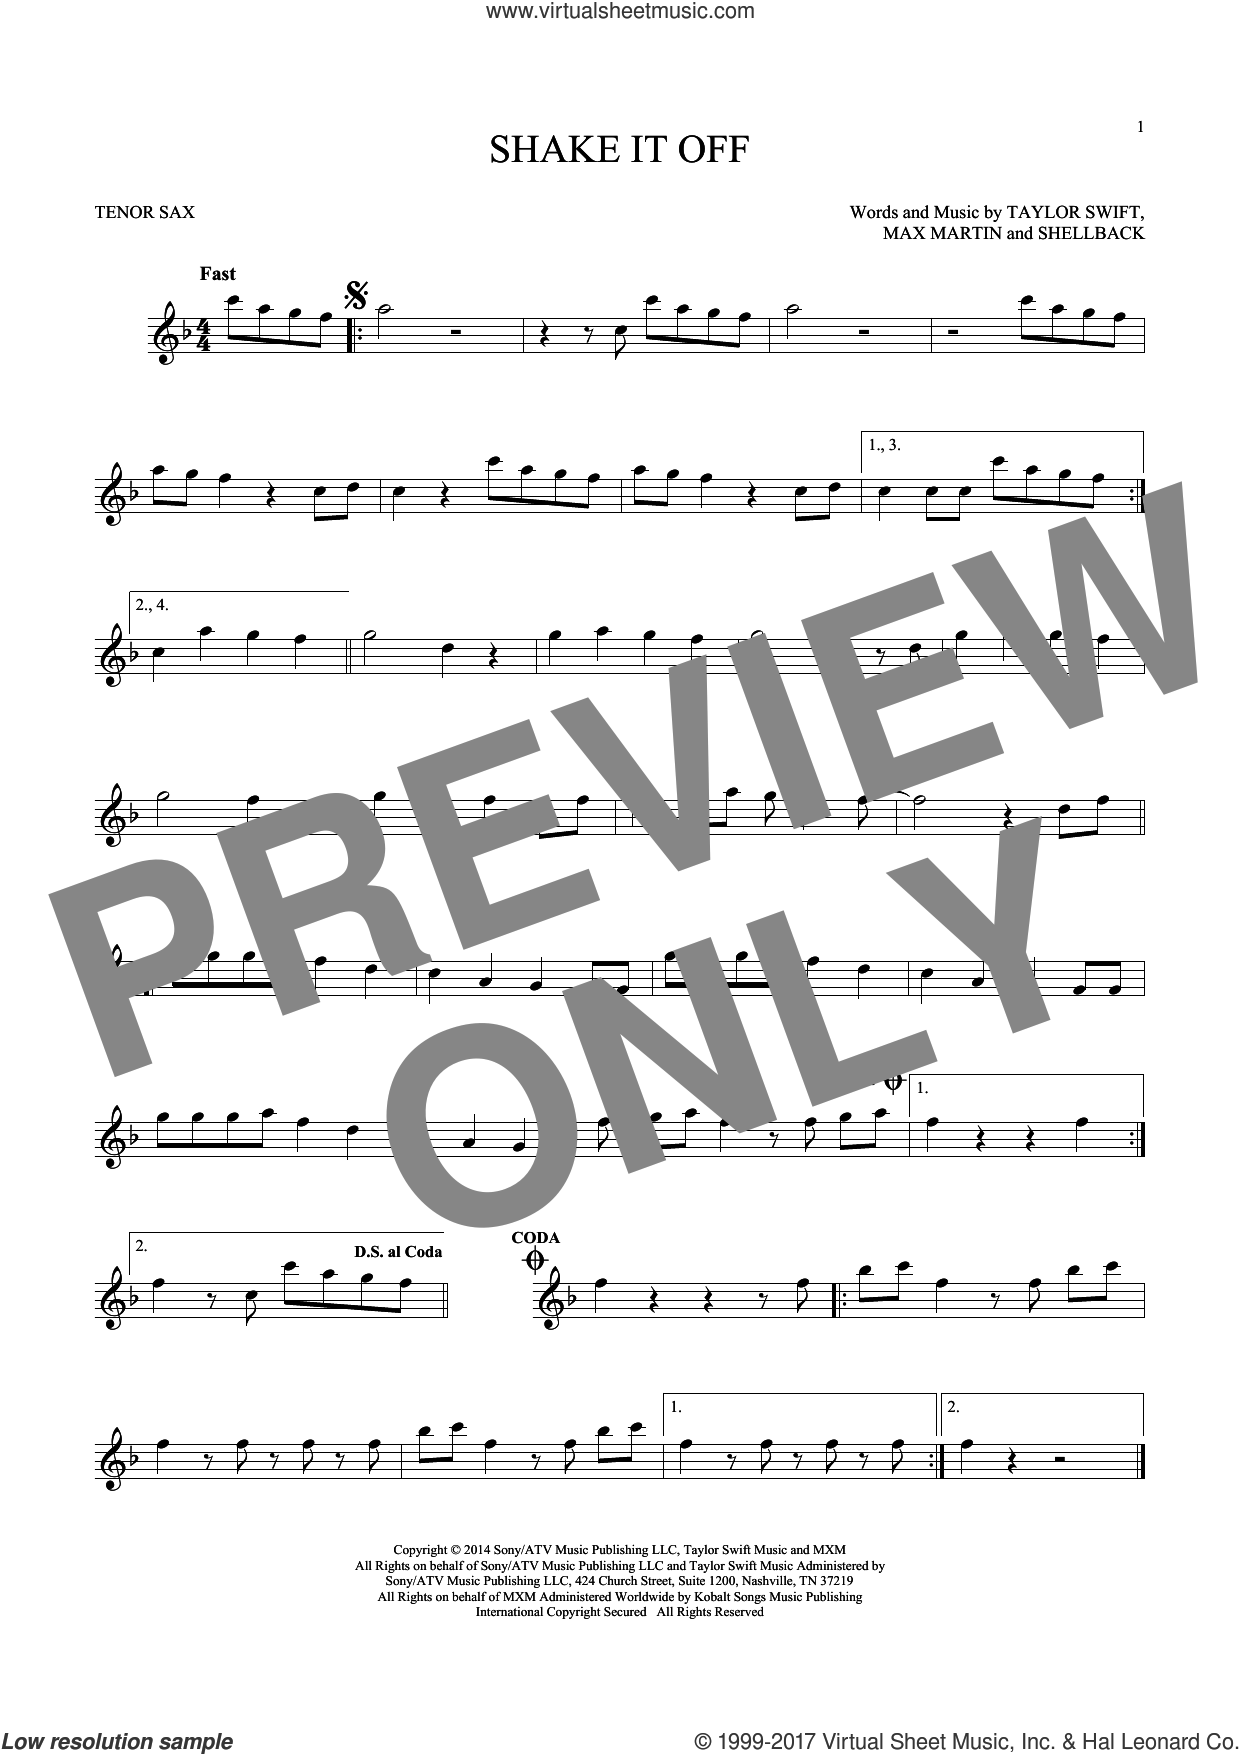 Shake It Off sheet music for tenor saxophone solo by Taylor Swift, Johan Schuster, Max Martin and Shellback, intermediate skill level